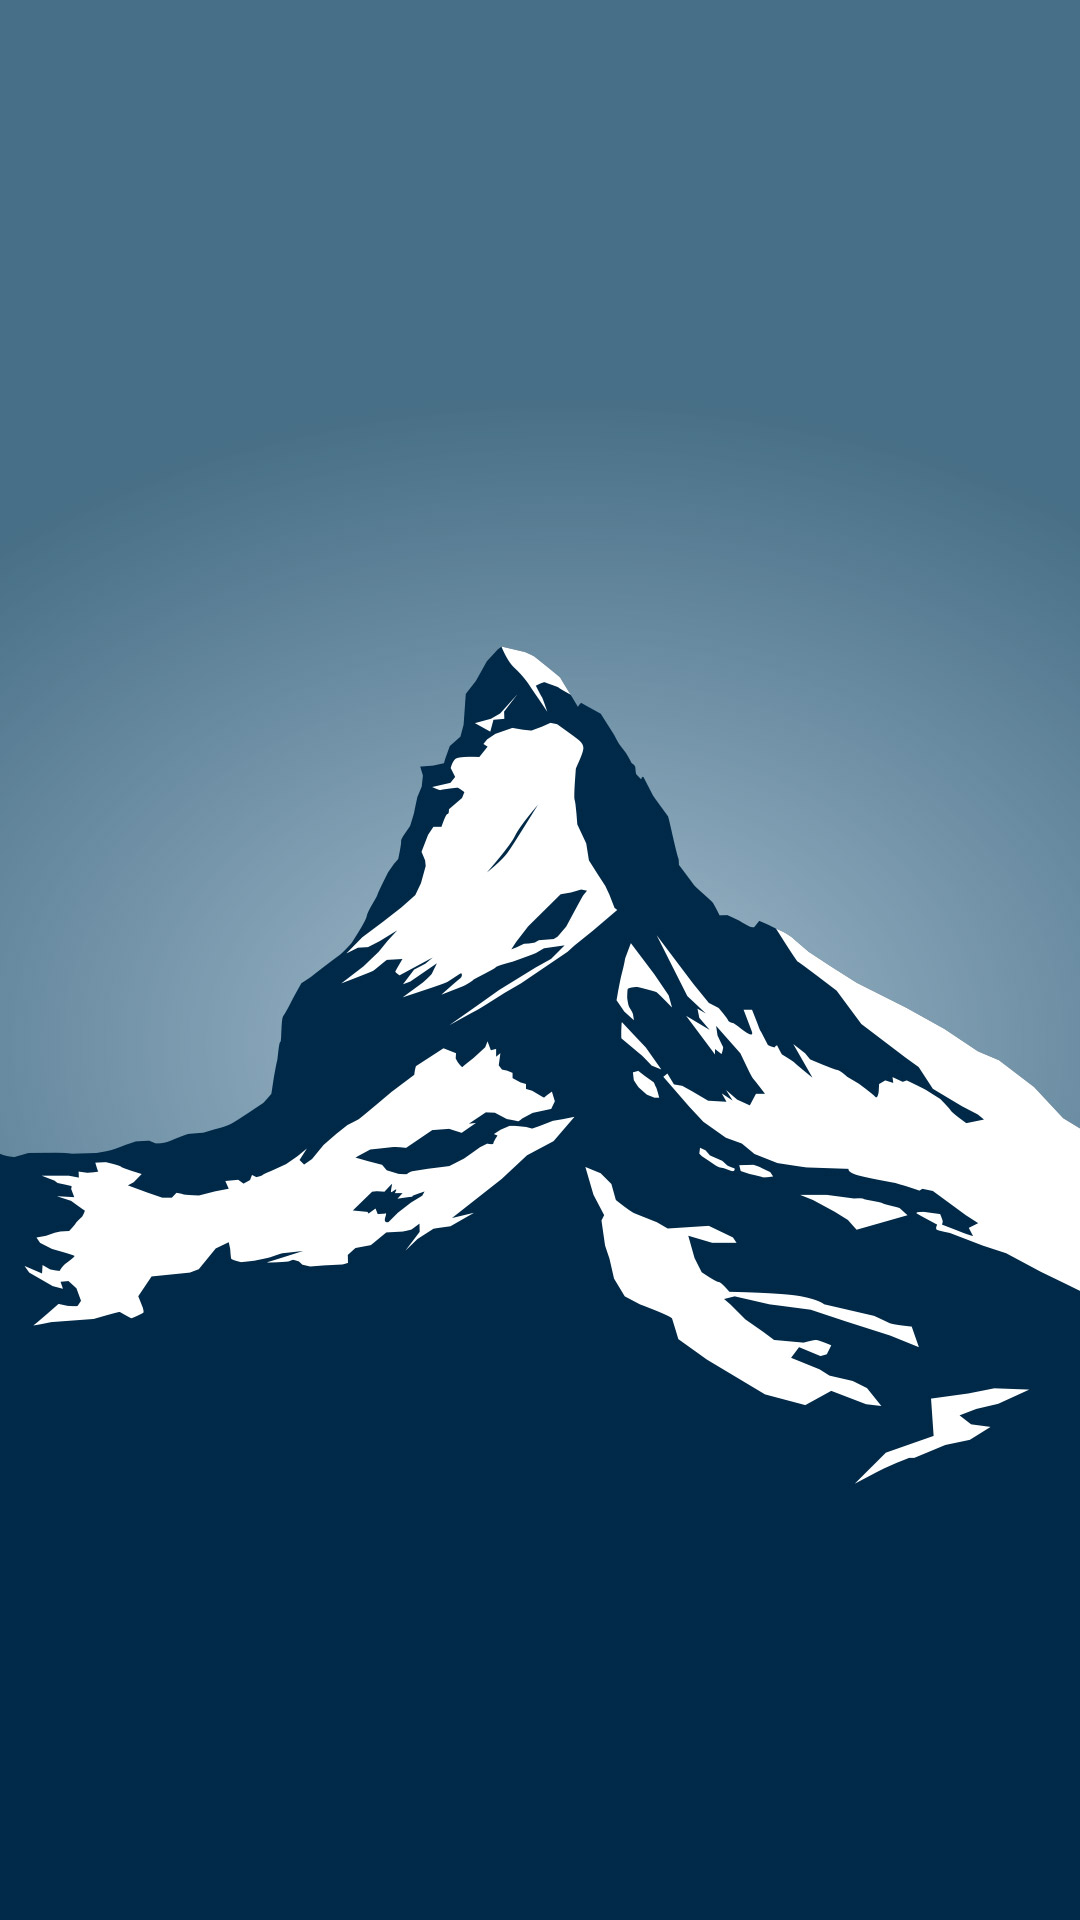 Amazing Wallpaper Mountain Smartphone - Marmotamaps_Wallpaper_Matterhorn_Smartphone_1080x1920  Best Photo Reference_943261.jpg